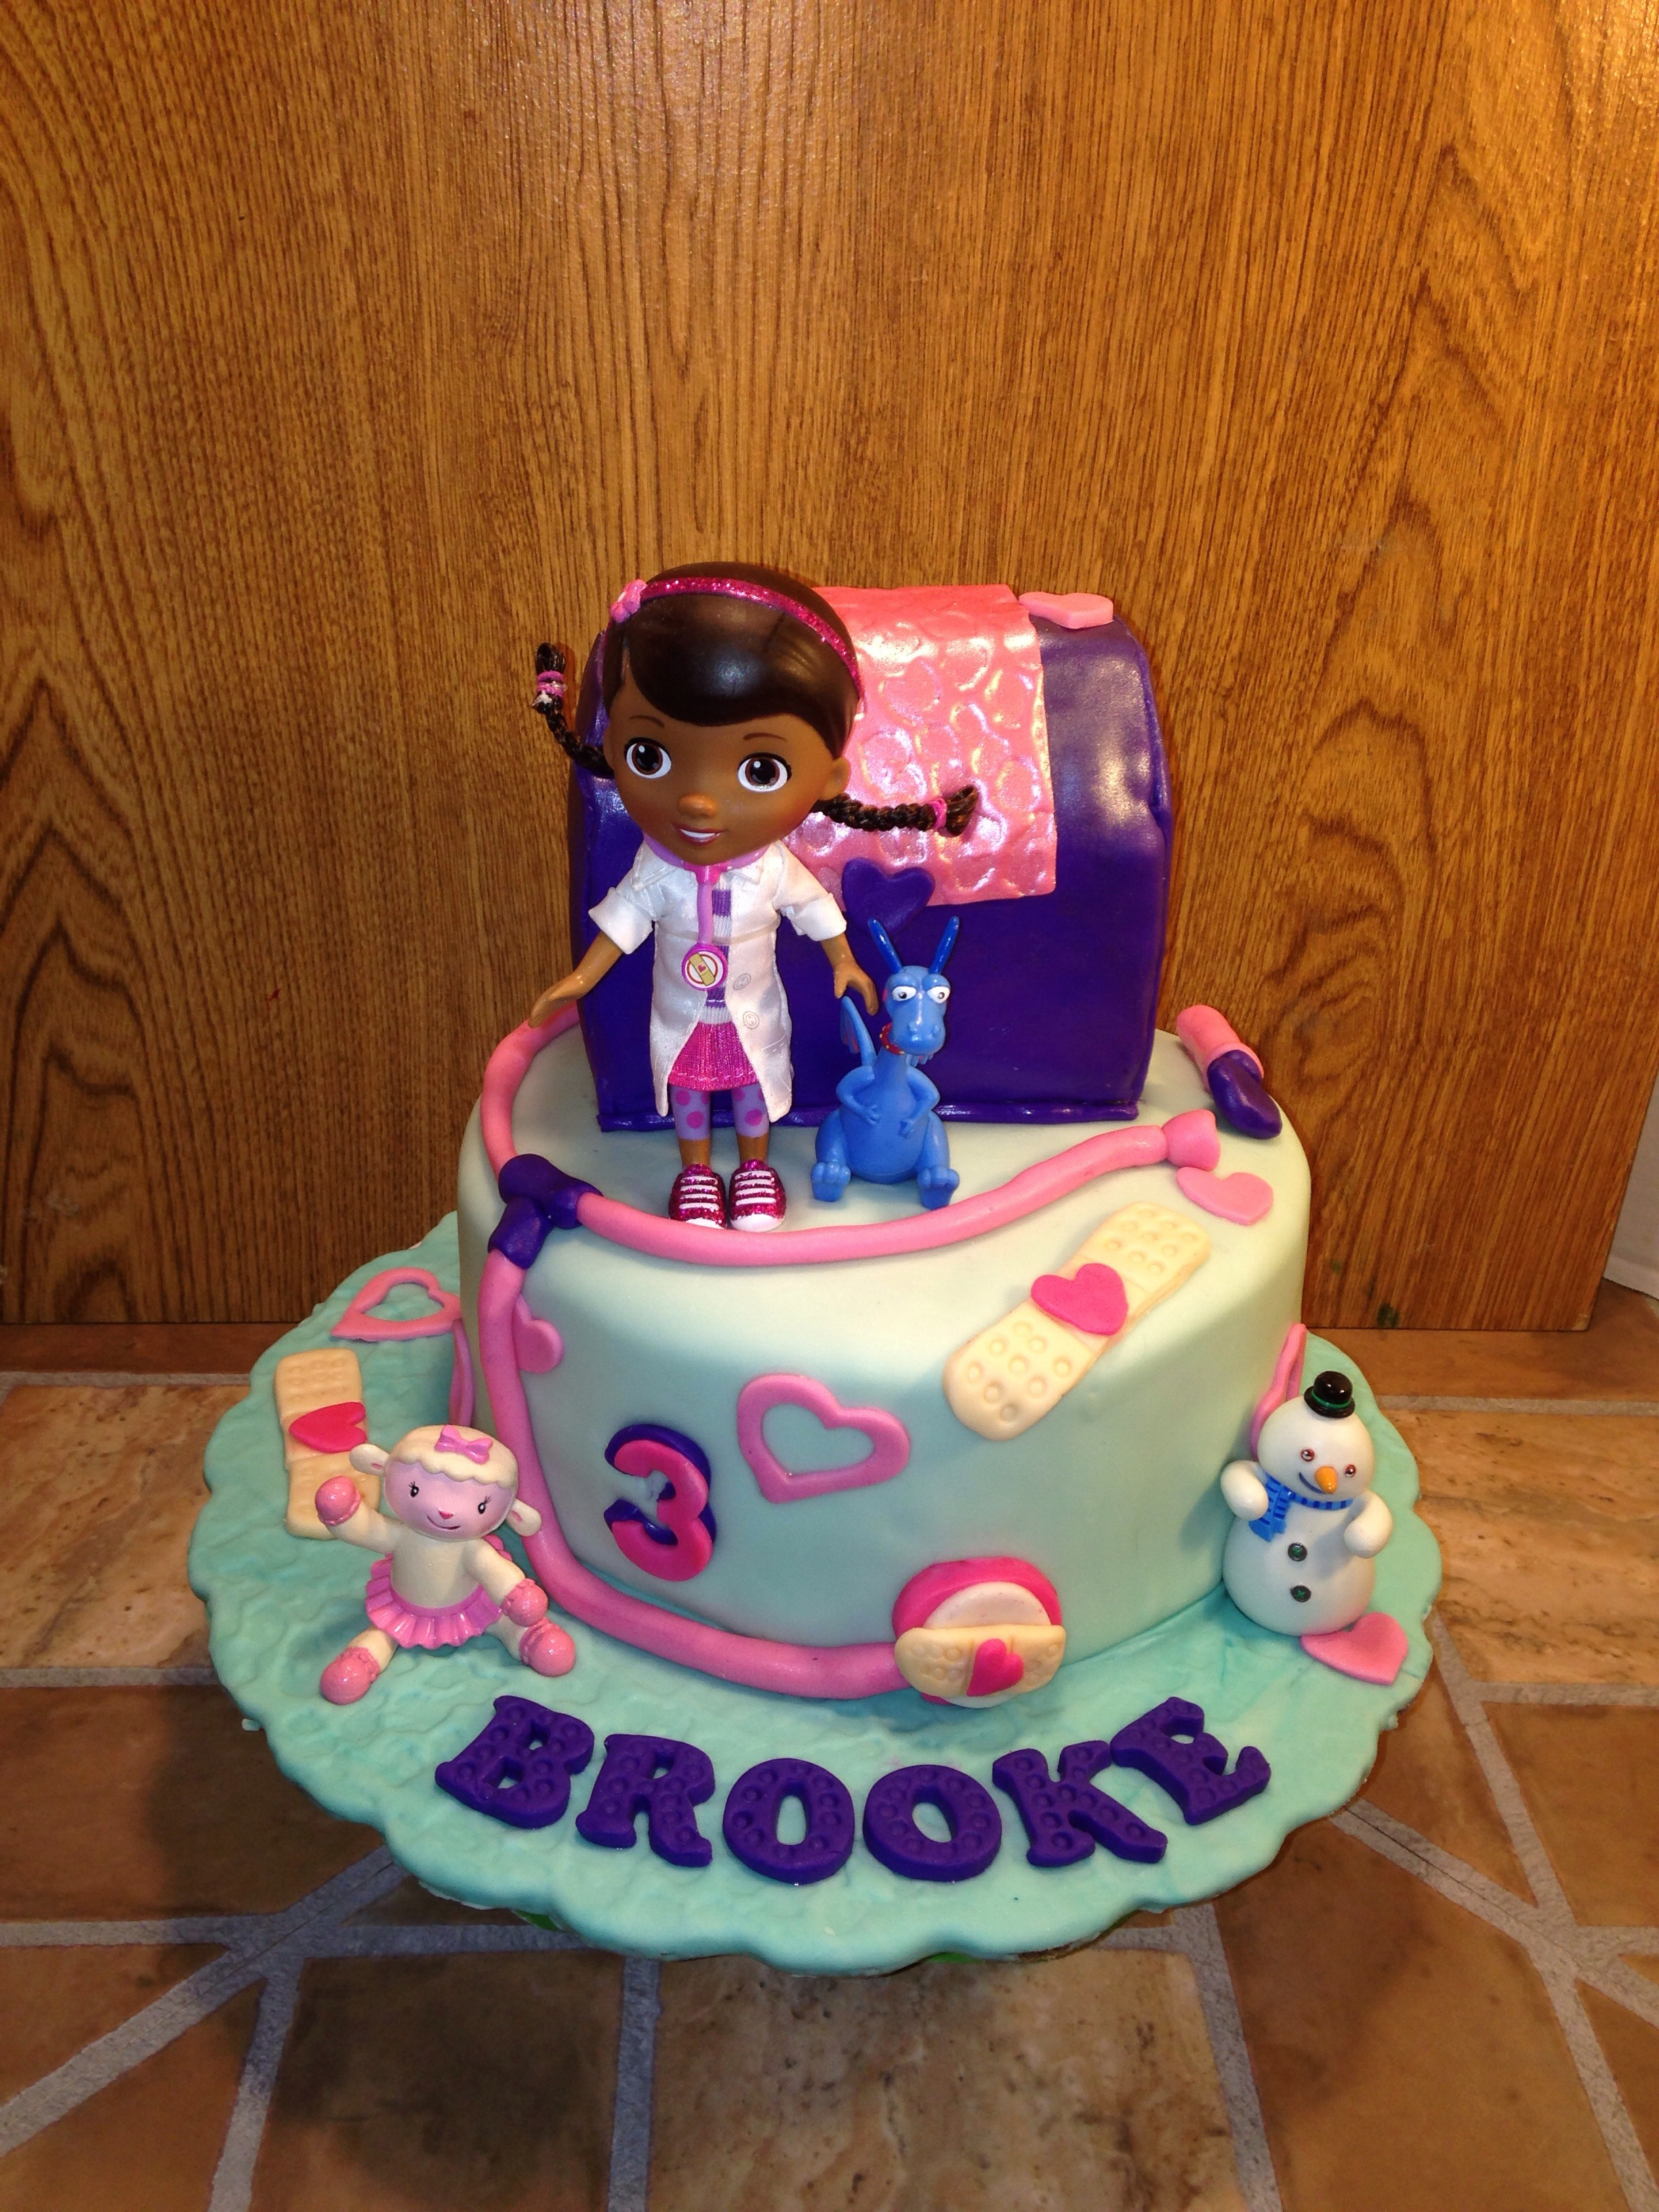 Doc Mcstuffins Birthday Cake Doc Mcstuffins Cake And Matching Cupcakes Httpswwwfacebook